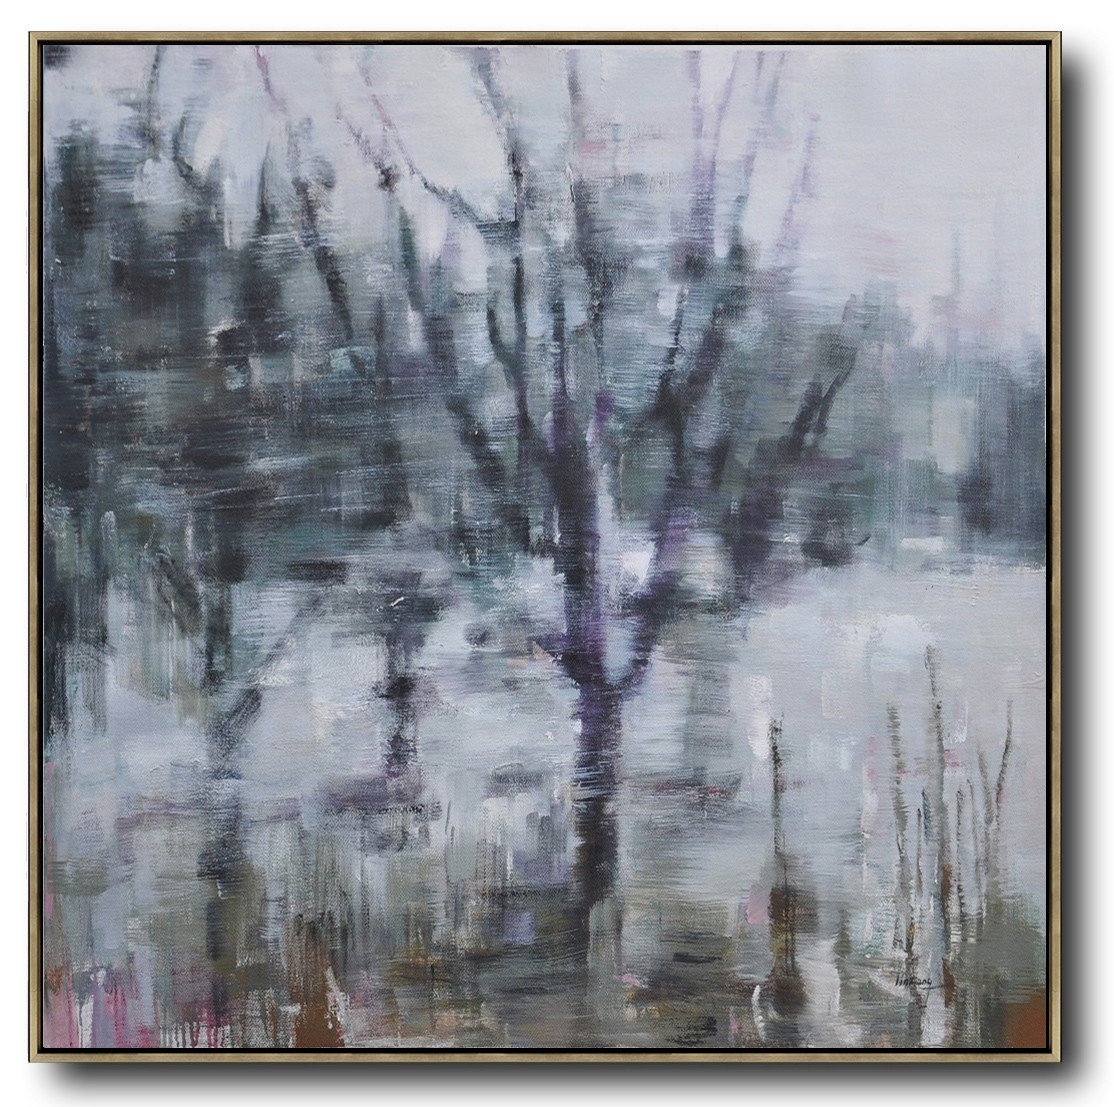 Oversized Canvas Art On Canvas,Abstract Landscape Oil Painting,Original Abstract Painting Canvas Art,White,Dark Green,Grey,Purple.etc